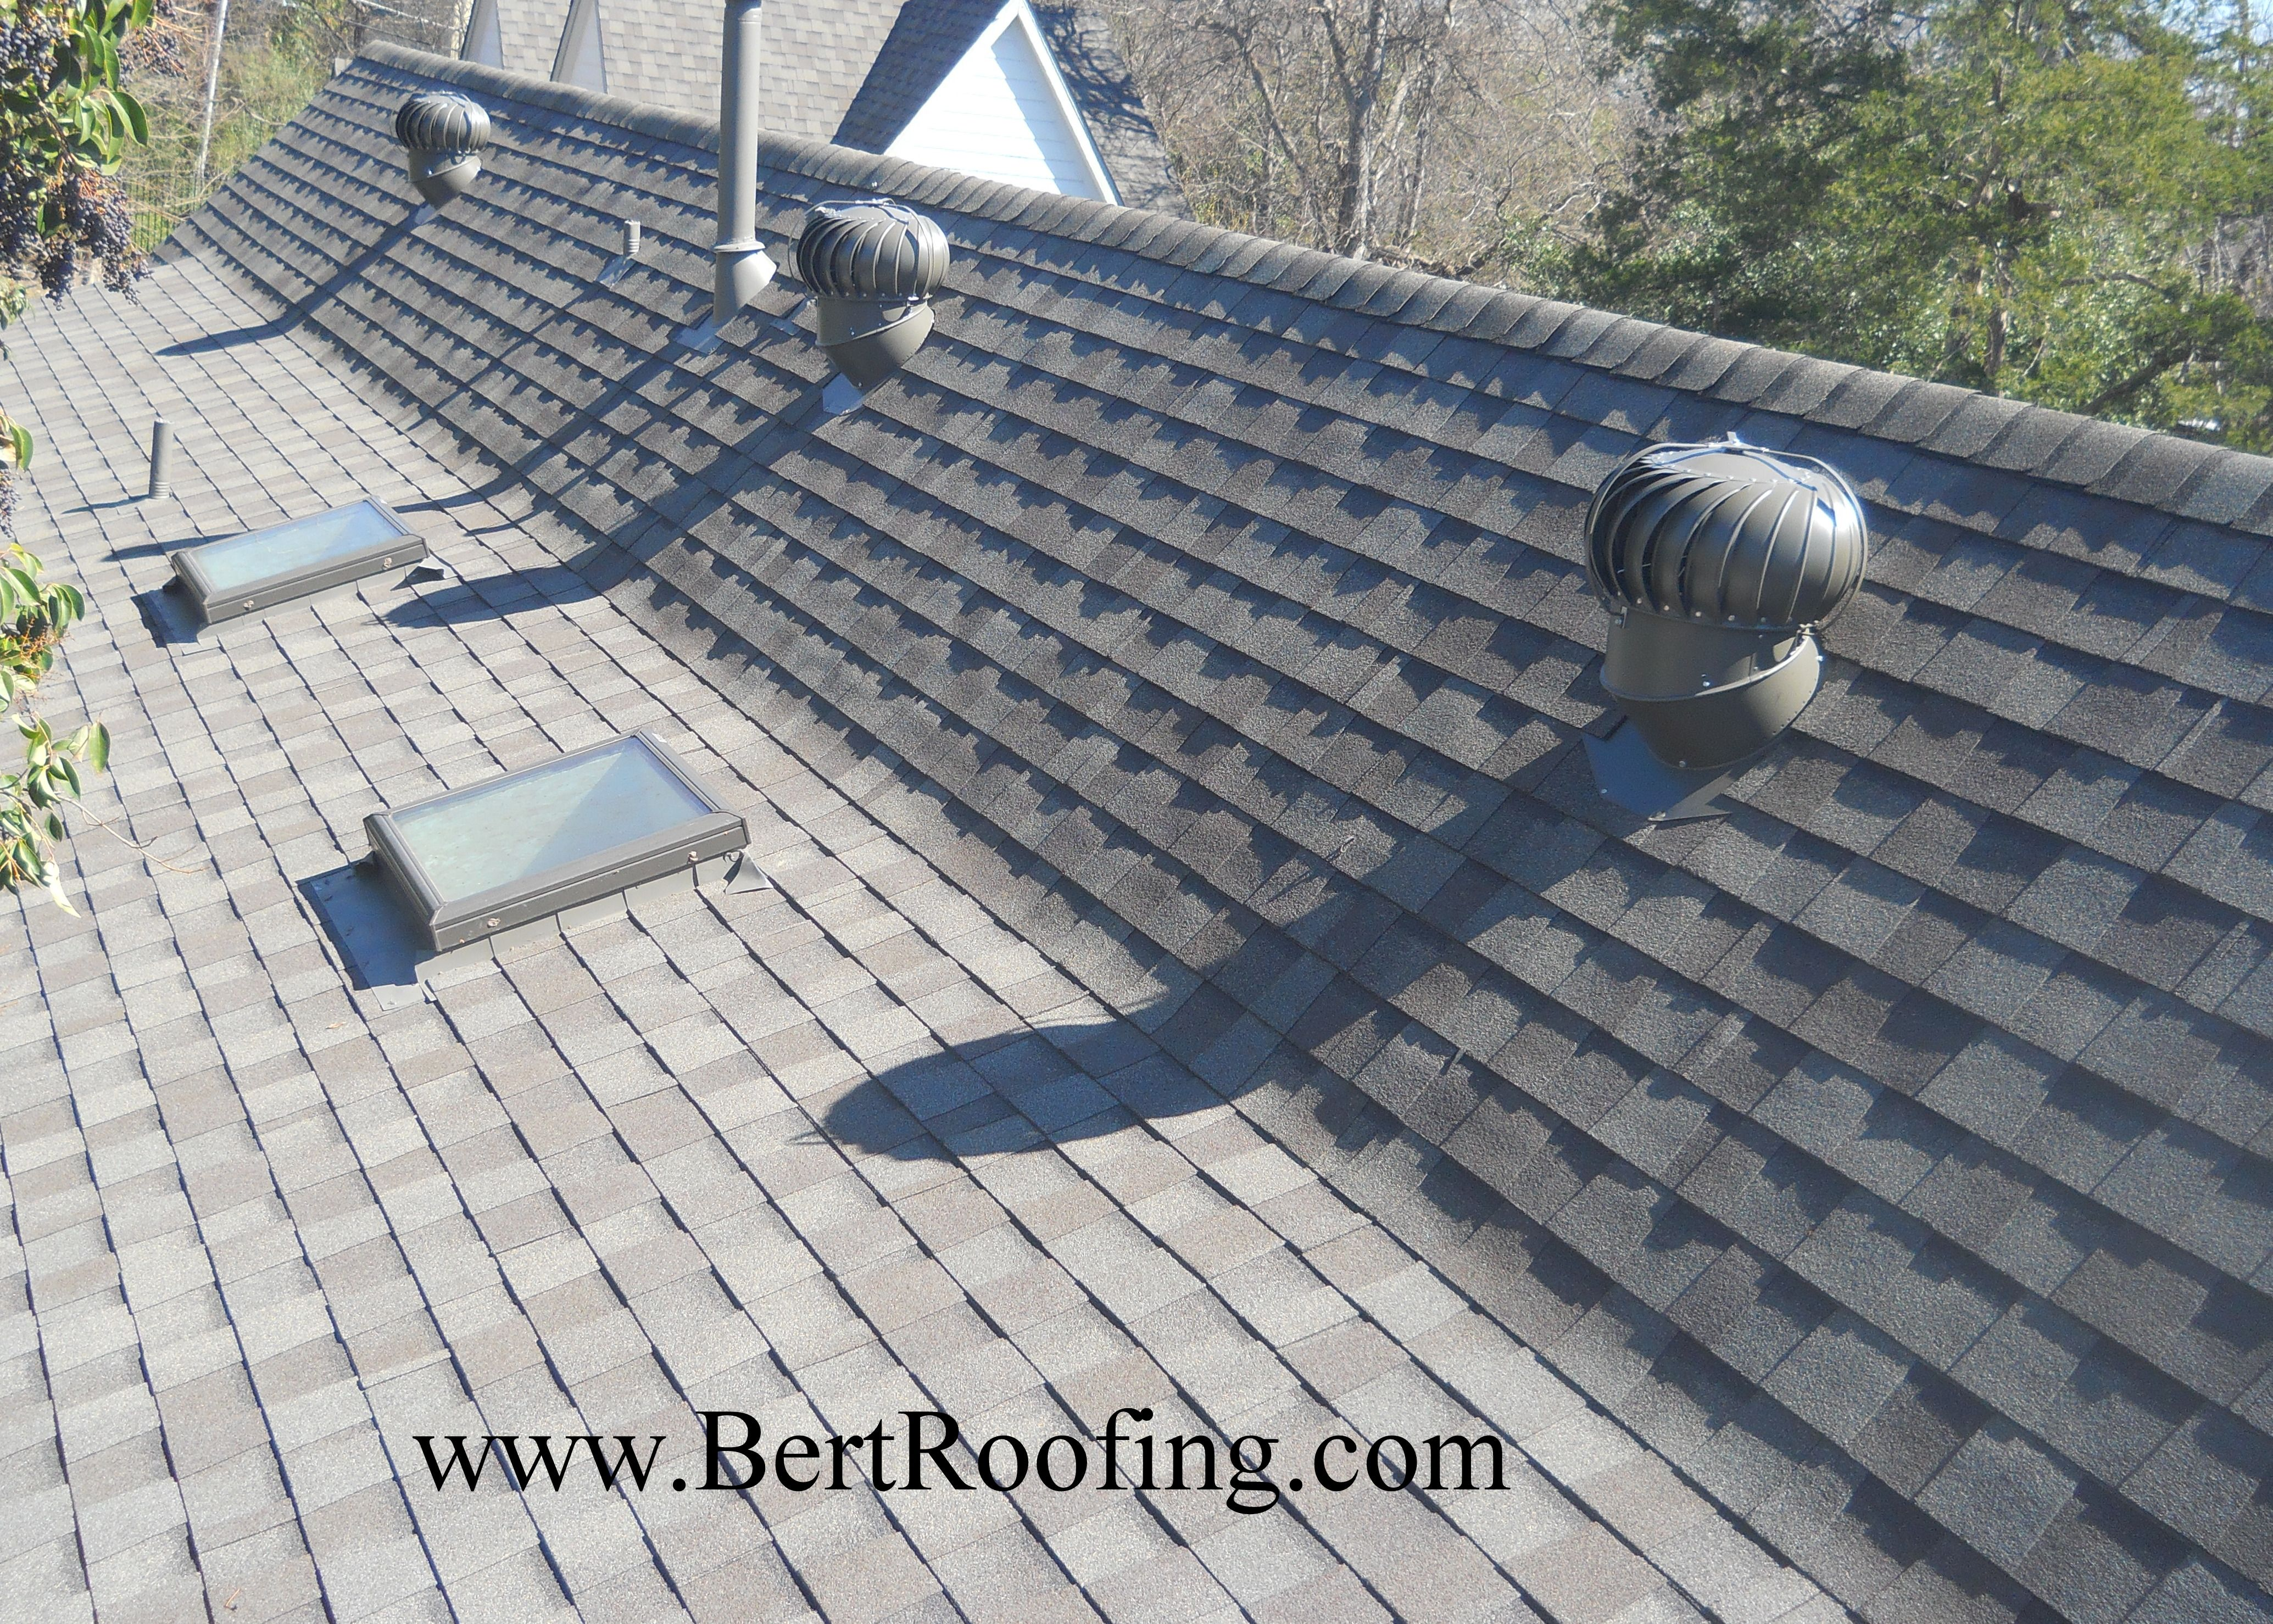 Dallas Roofing Company Bert Roofing Dallas Roofing Contractor Roof Repair Roofing Weathered Wood Certainteed